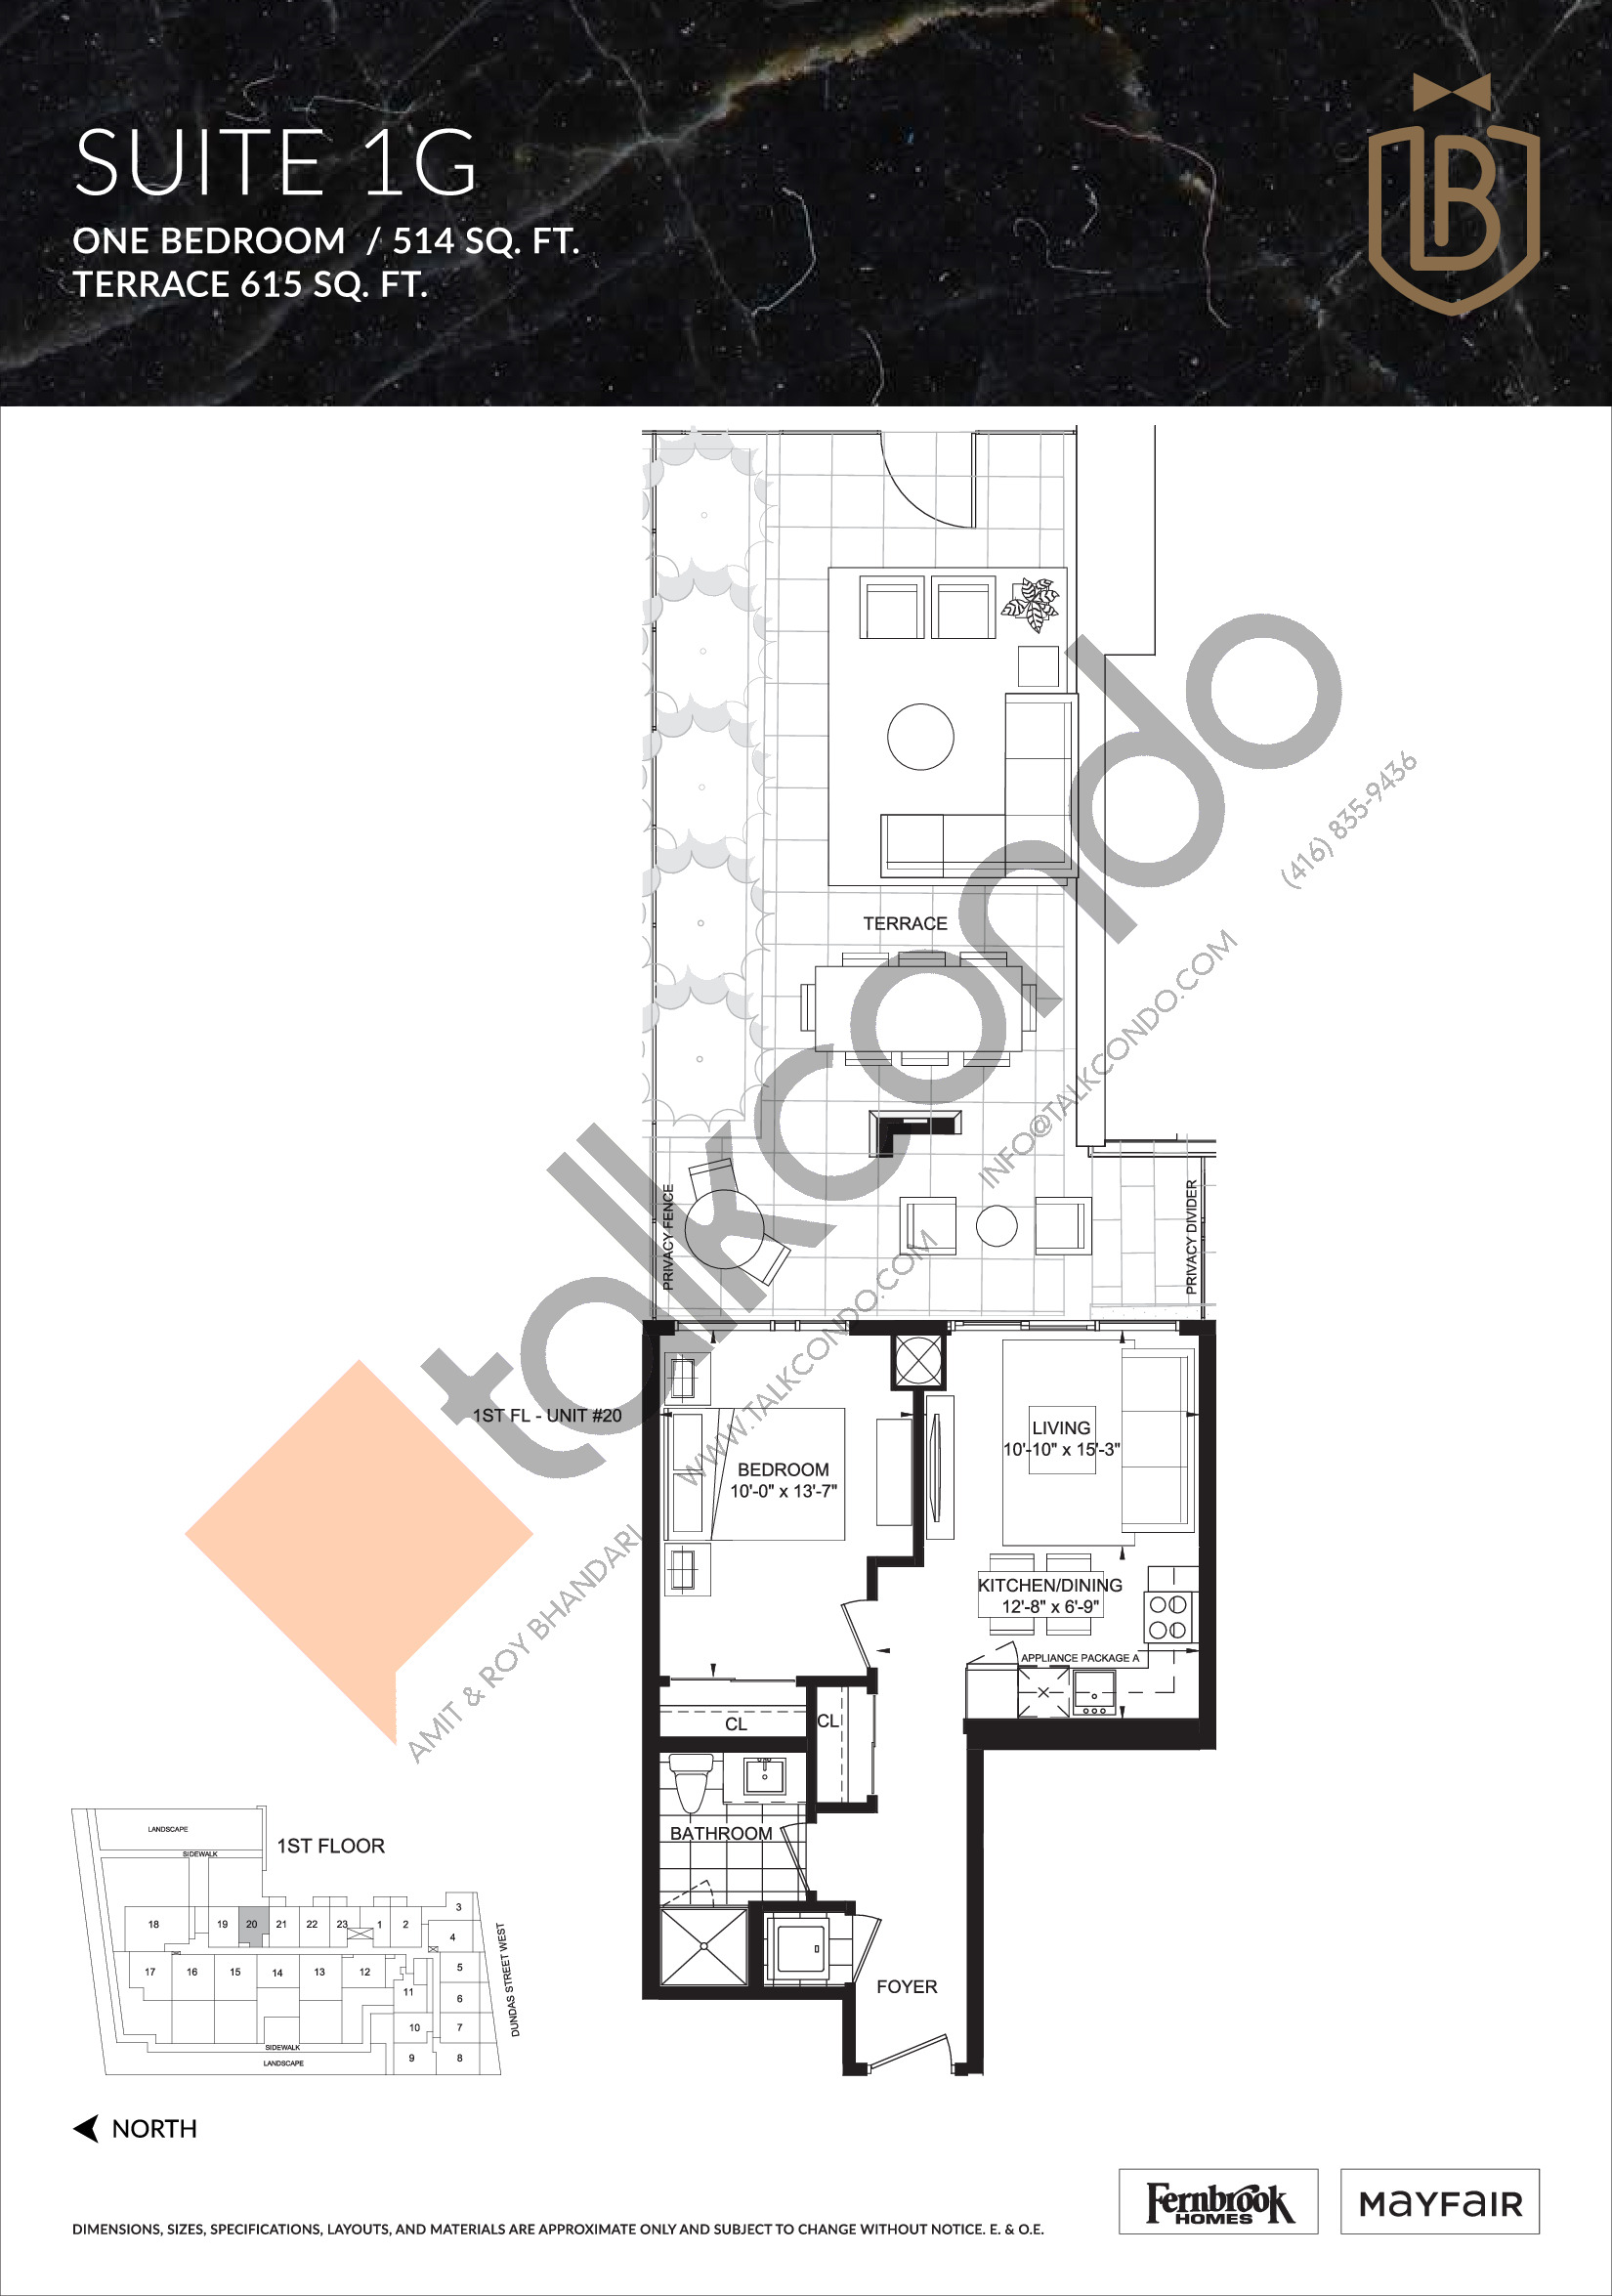 Suite 1G (Terrace) Floor Plan at The Butler Condos - 514 sq.ft